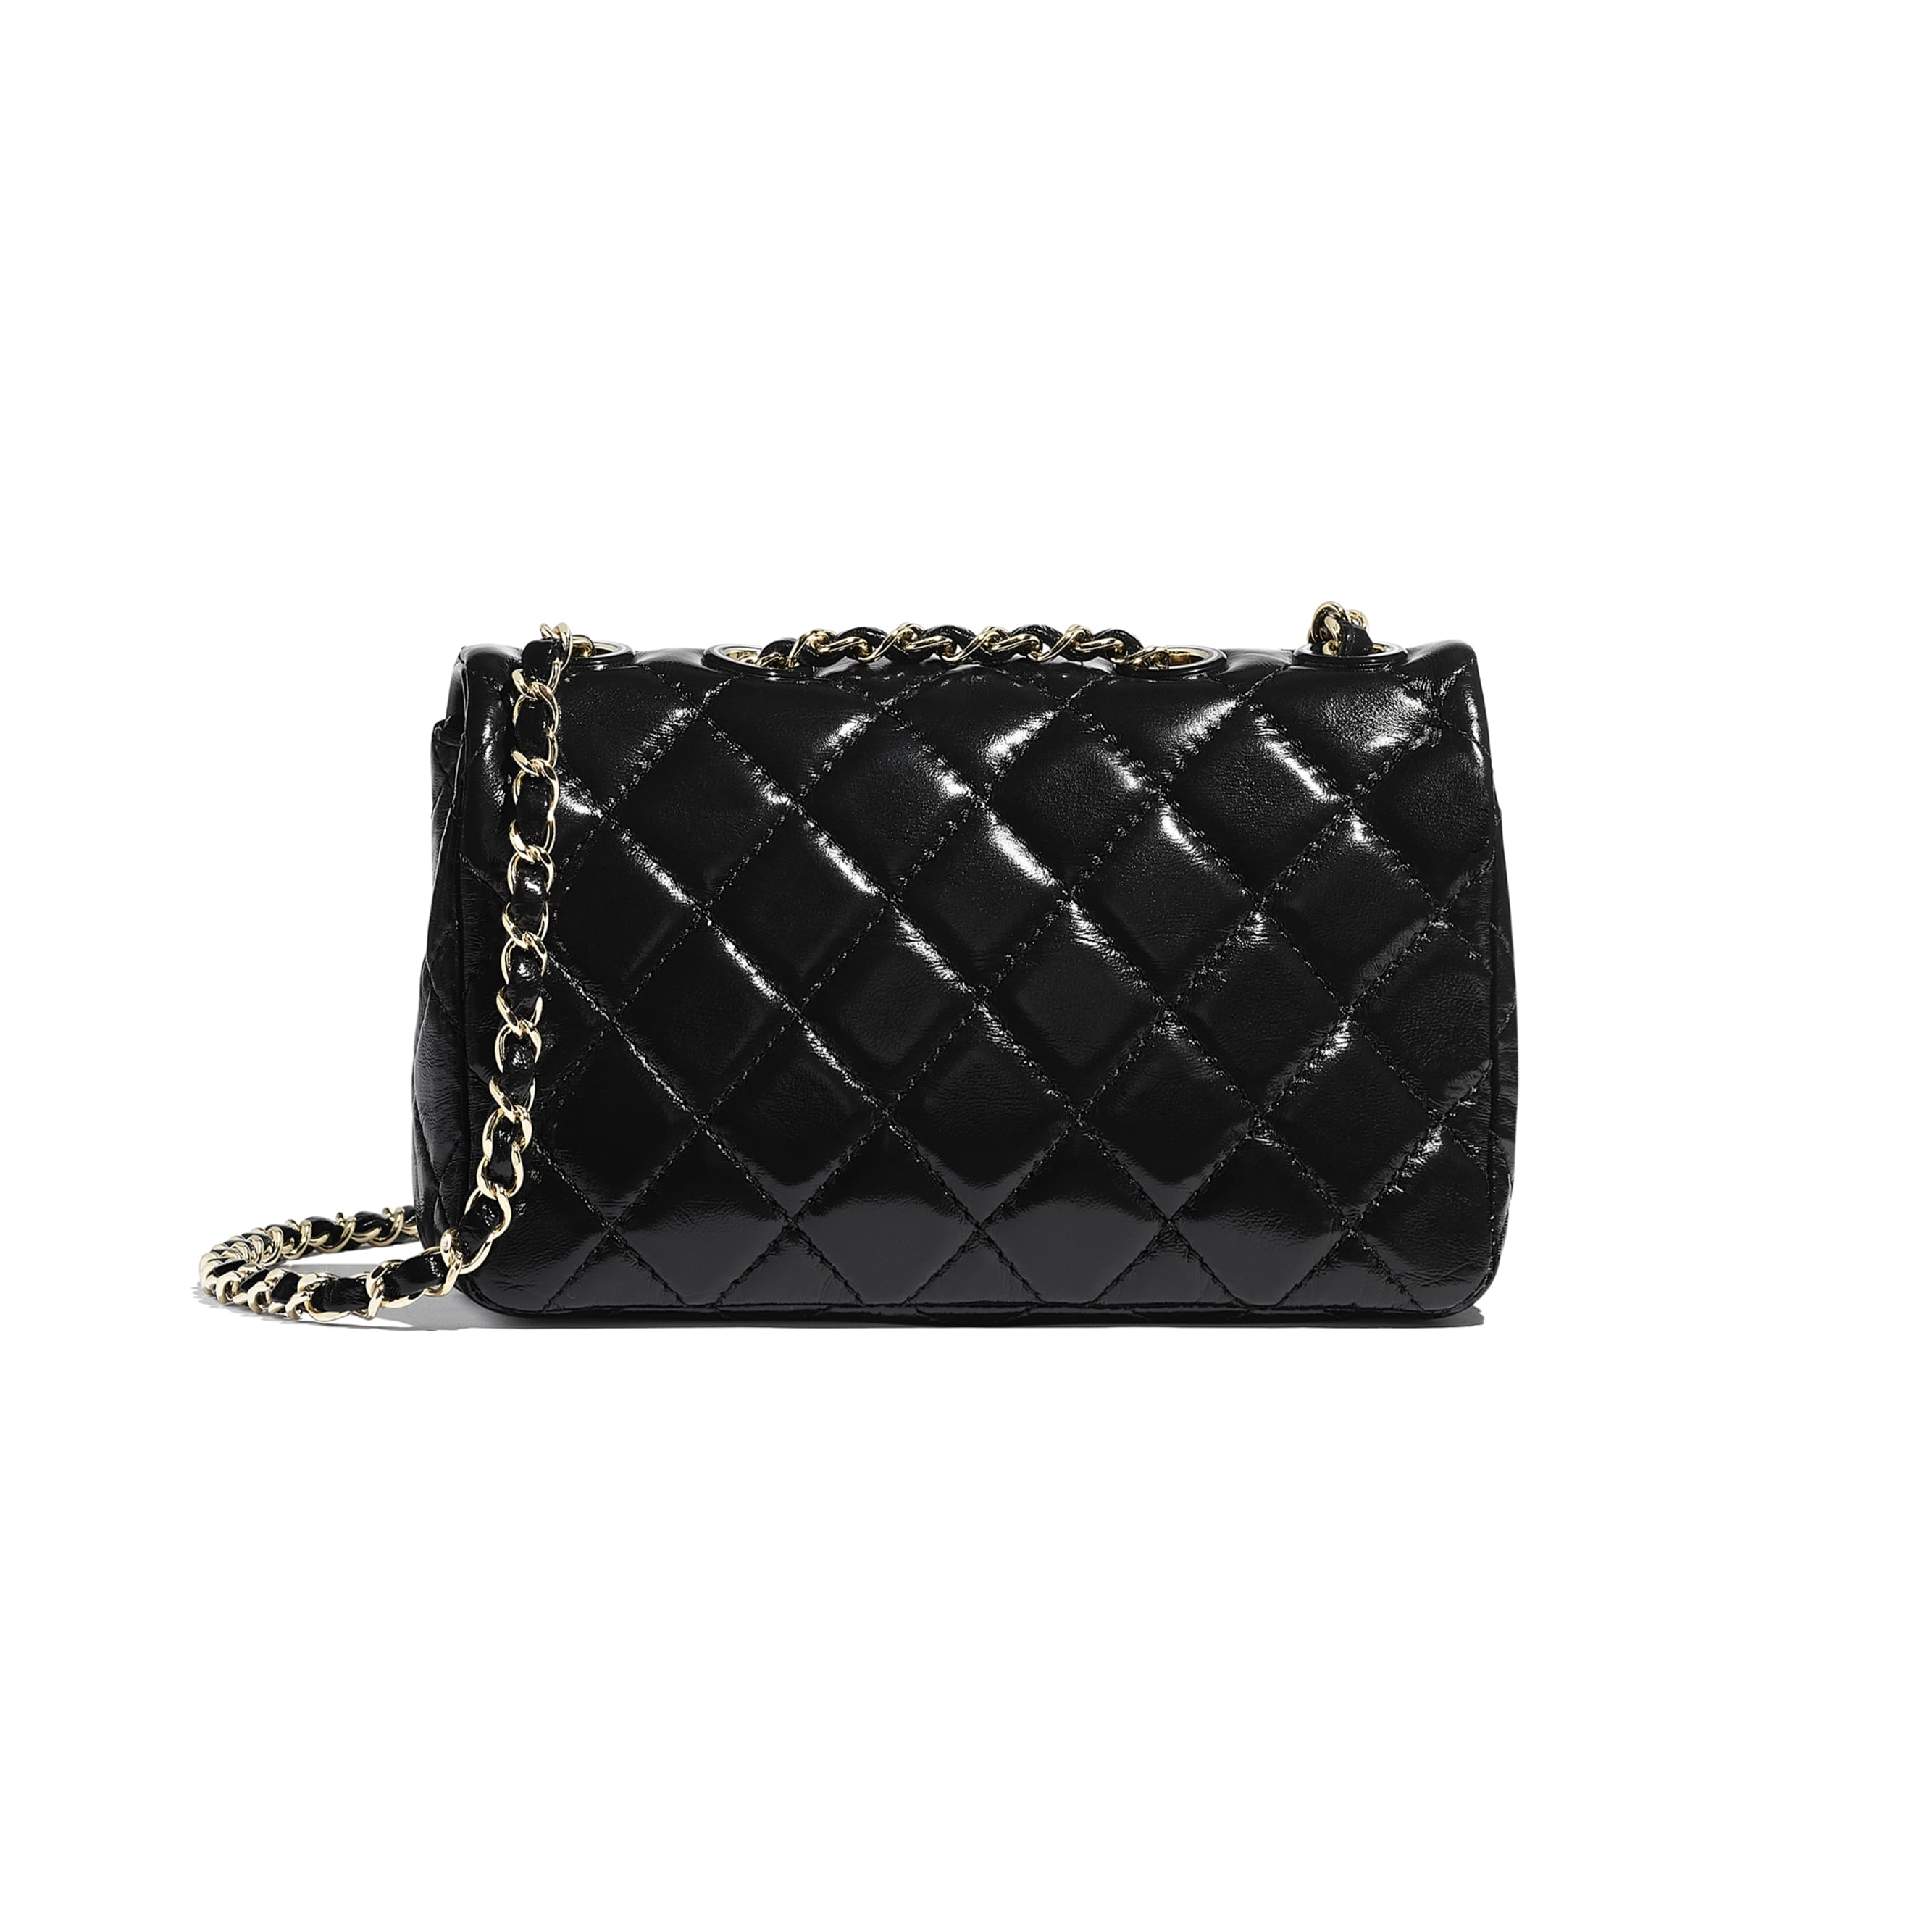 Flap Bag - Black - Shiny Lambskin & Gold-Tone Metal - Alternative view - see standard sized version